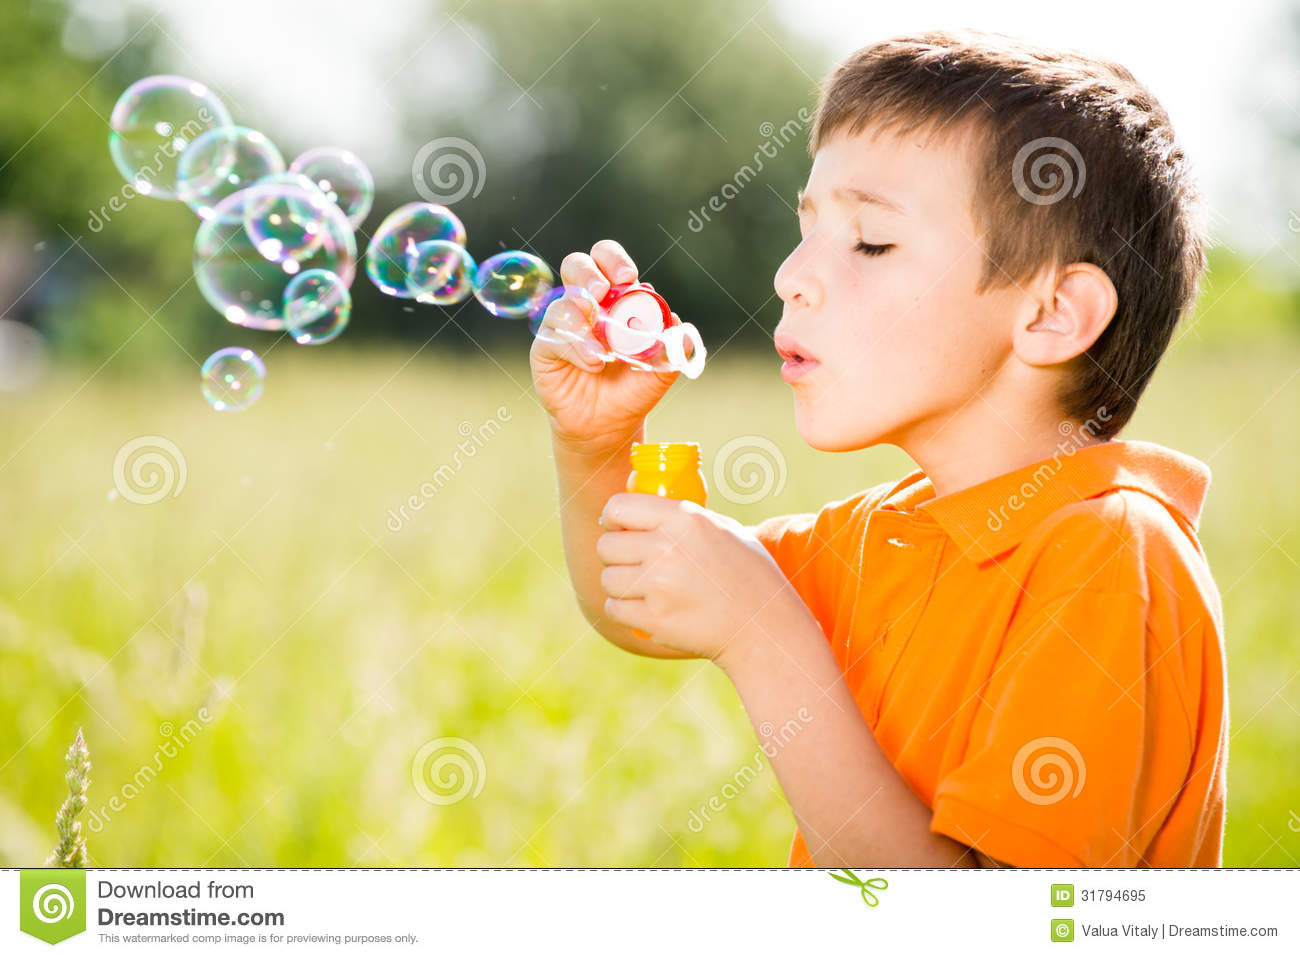 How to Blow a Soap Bubble How to Blow a Soap Bubble new pictures